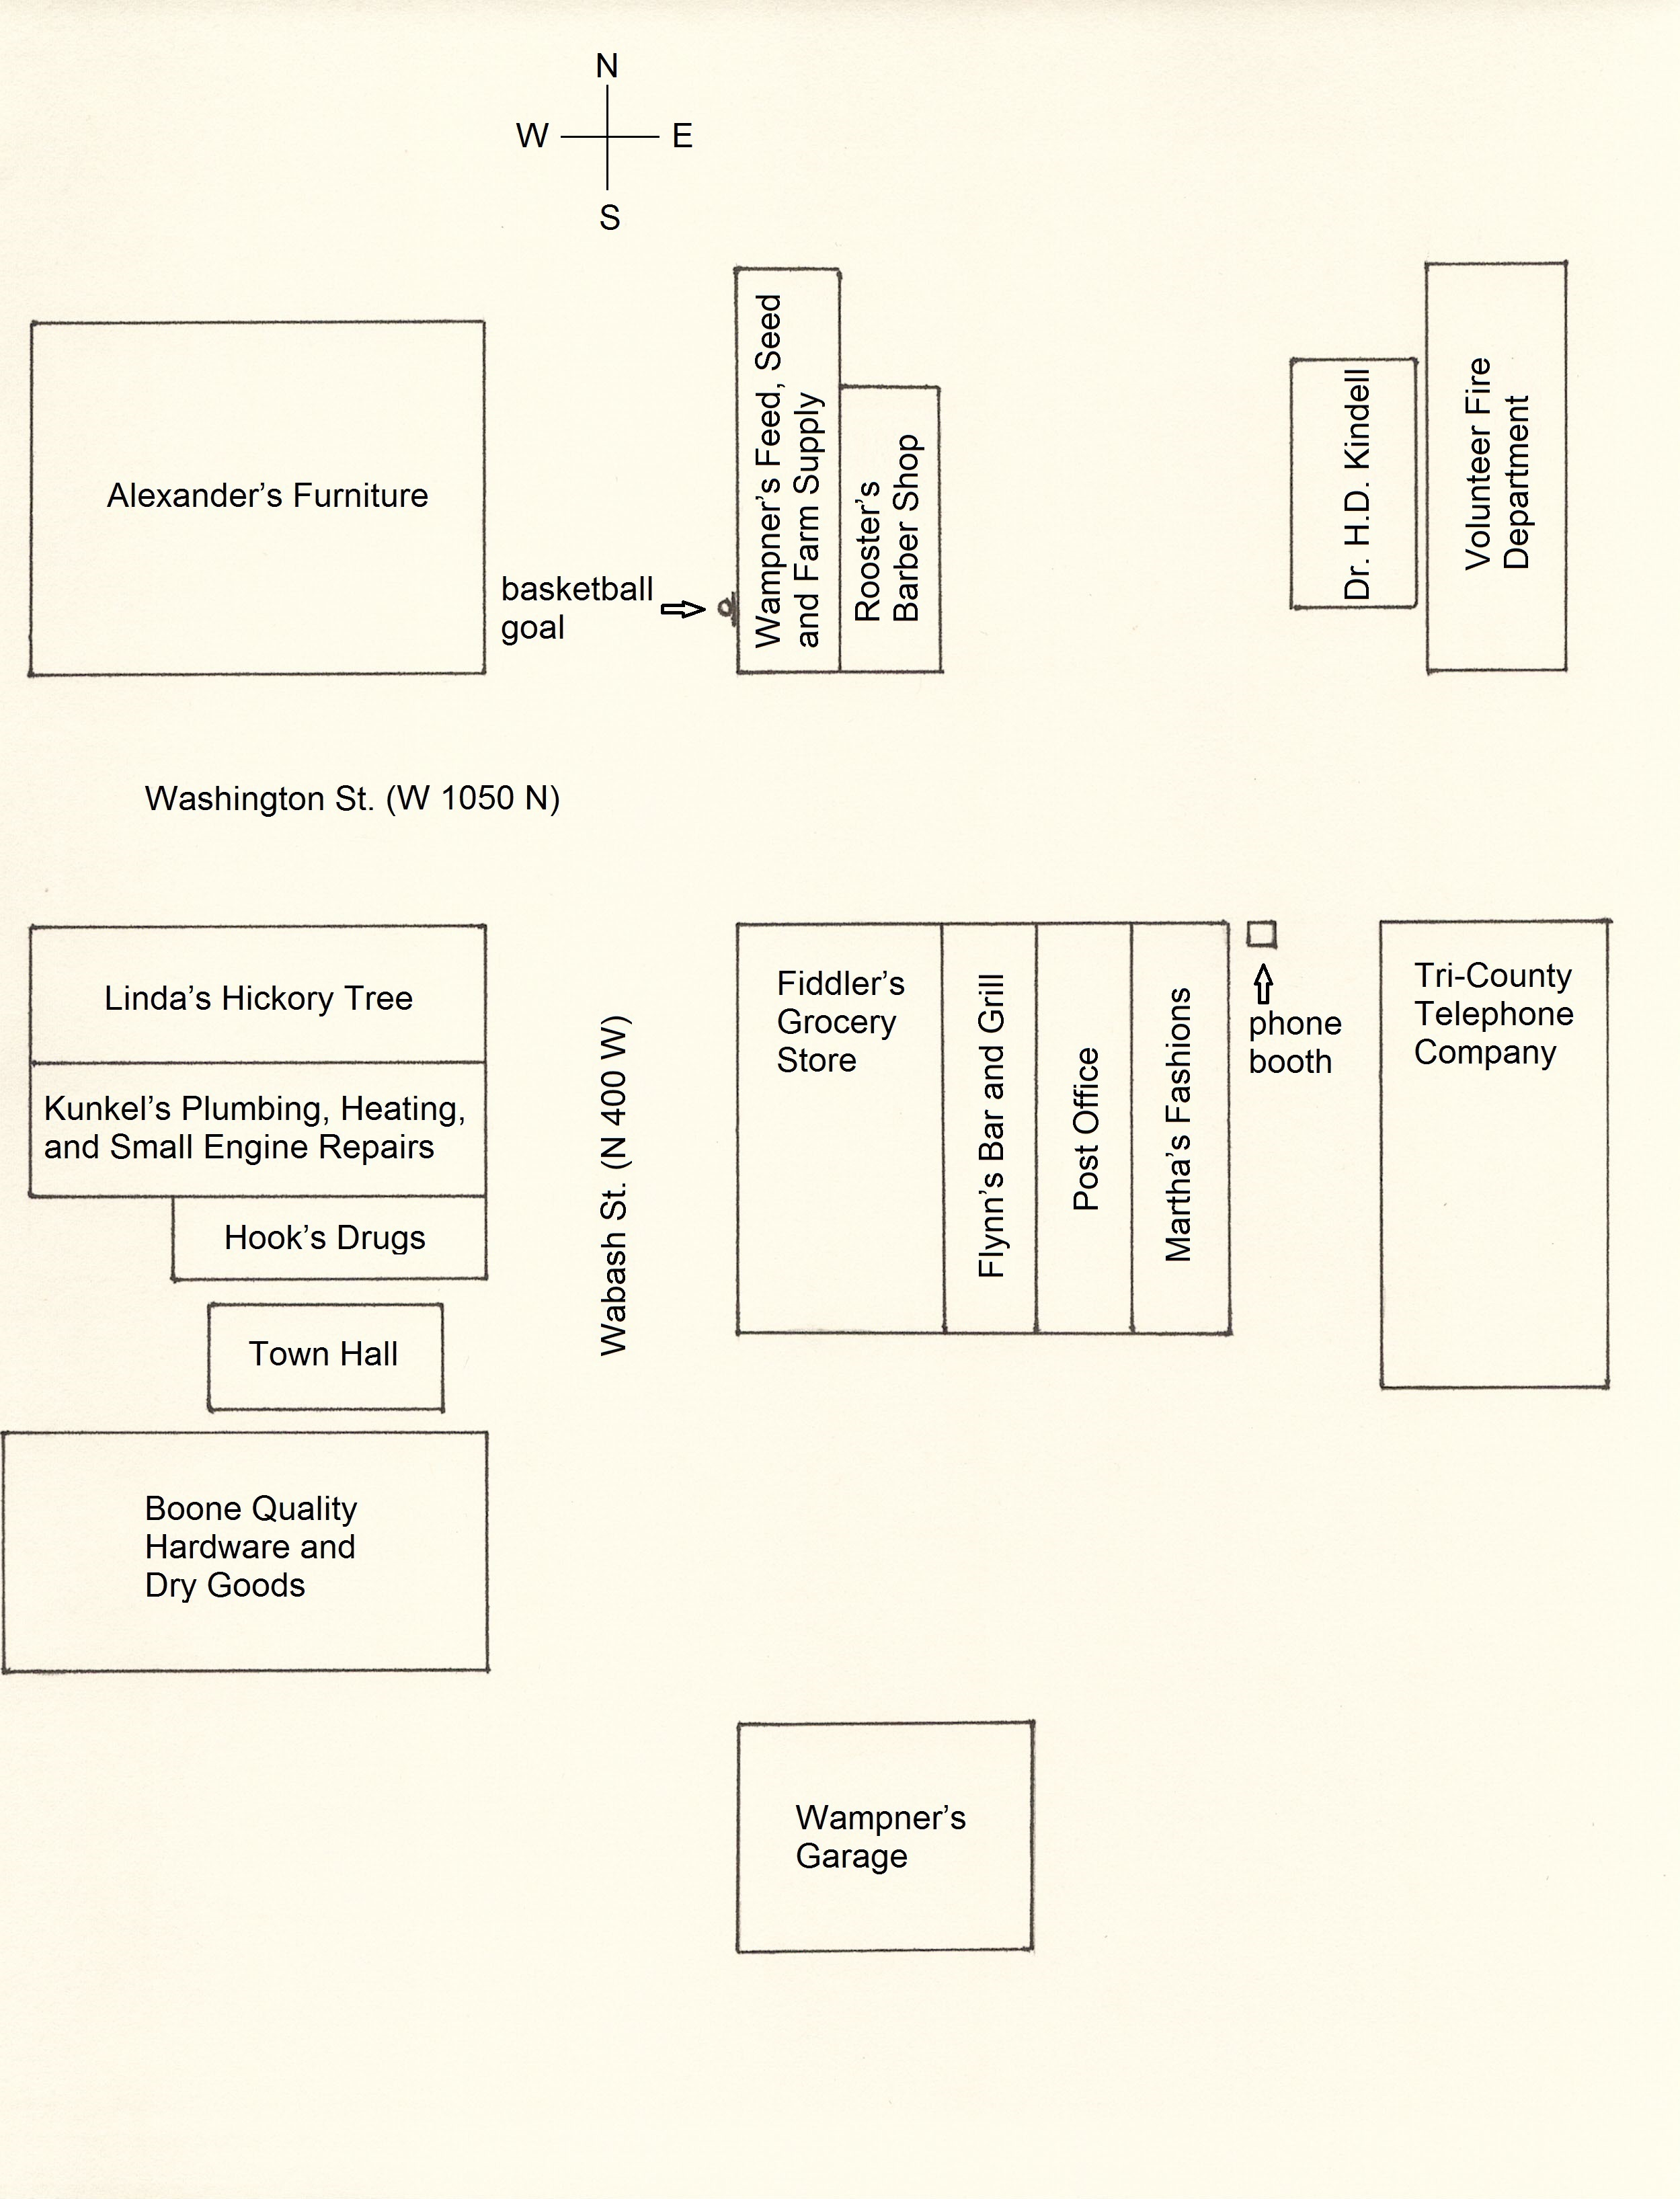 Diagram of downtown Hickory